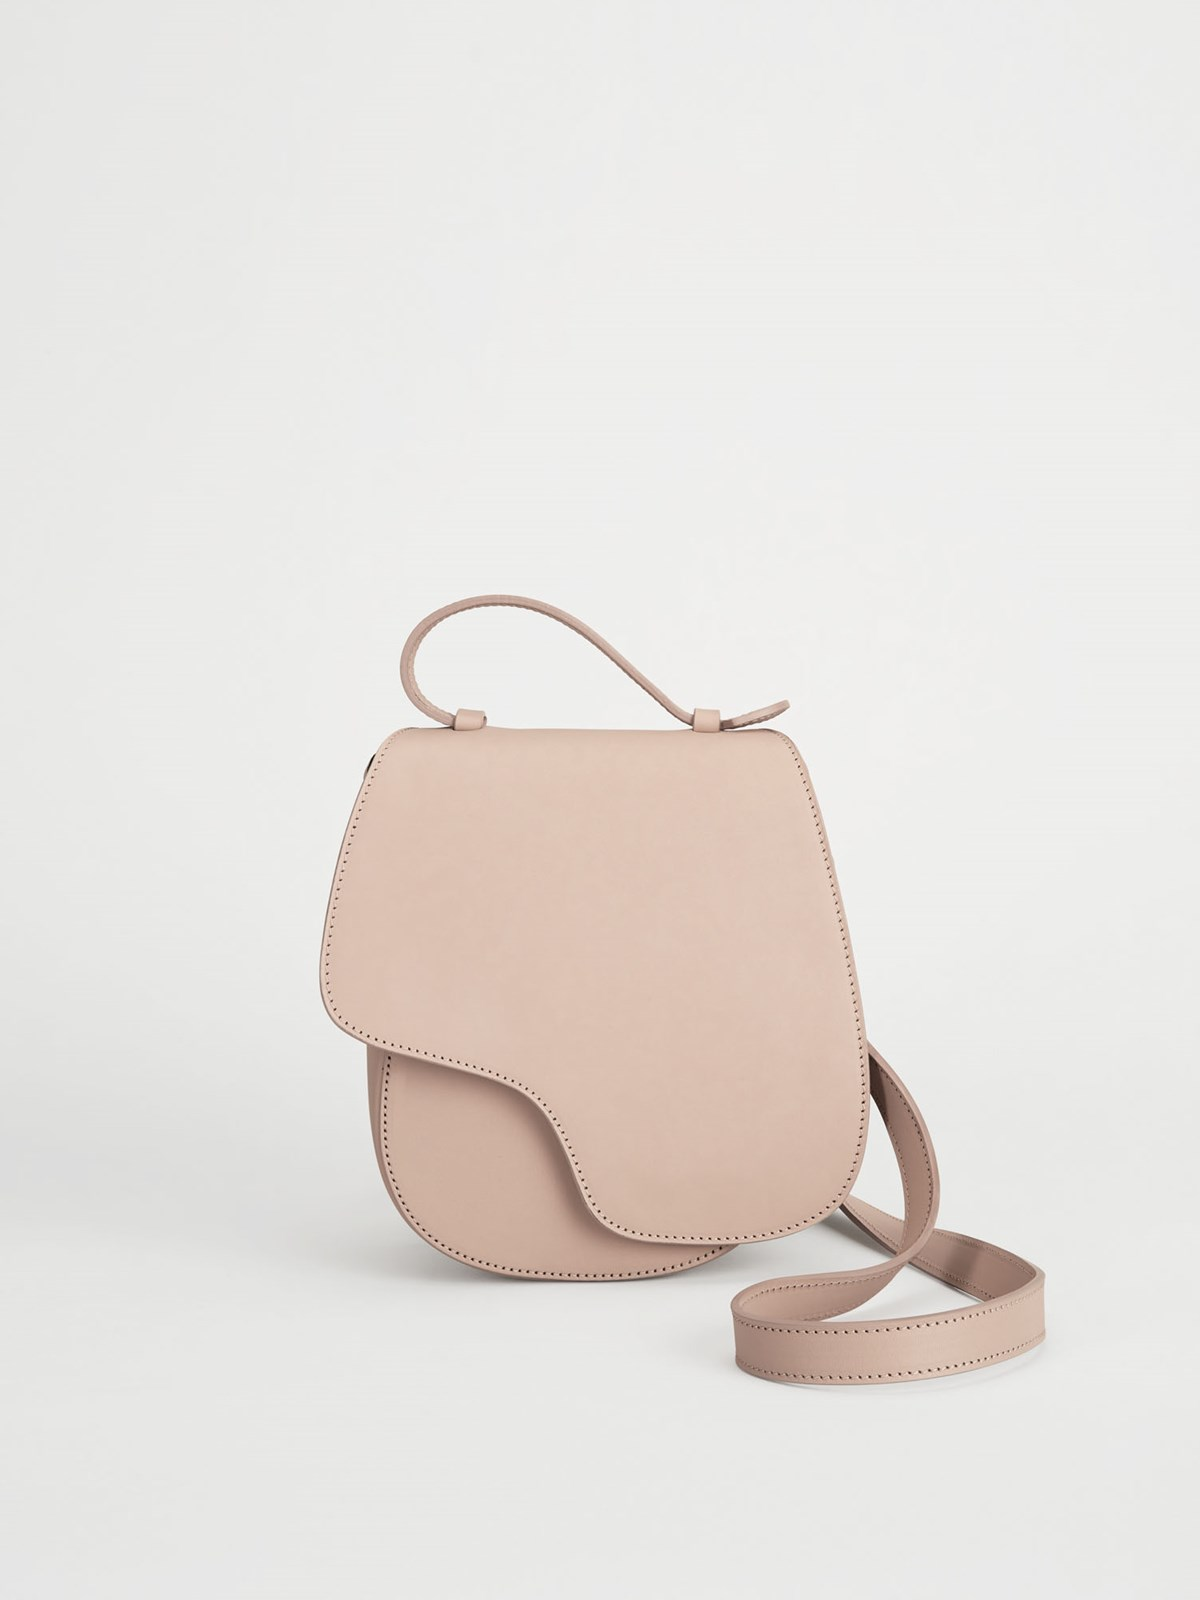 Carrara Sand Crossbody bag